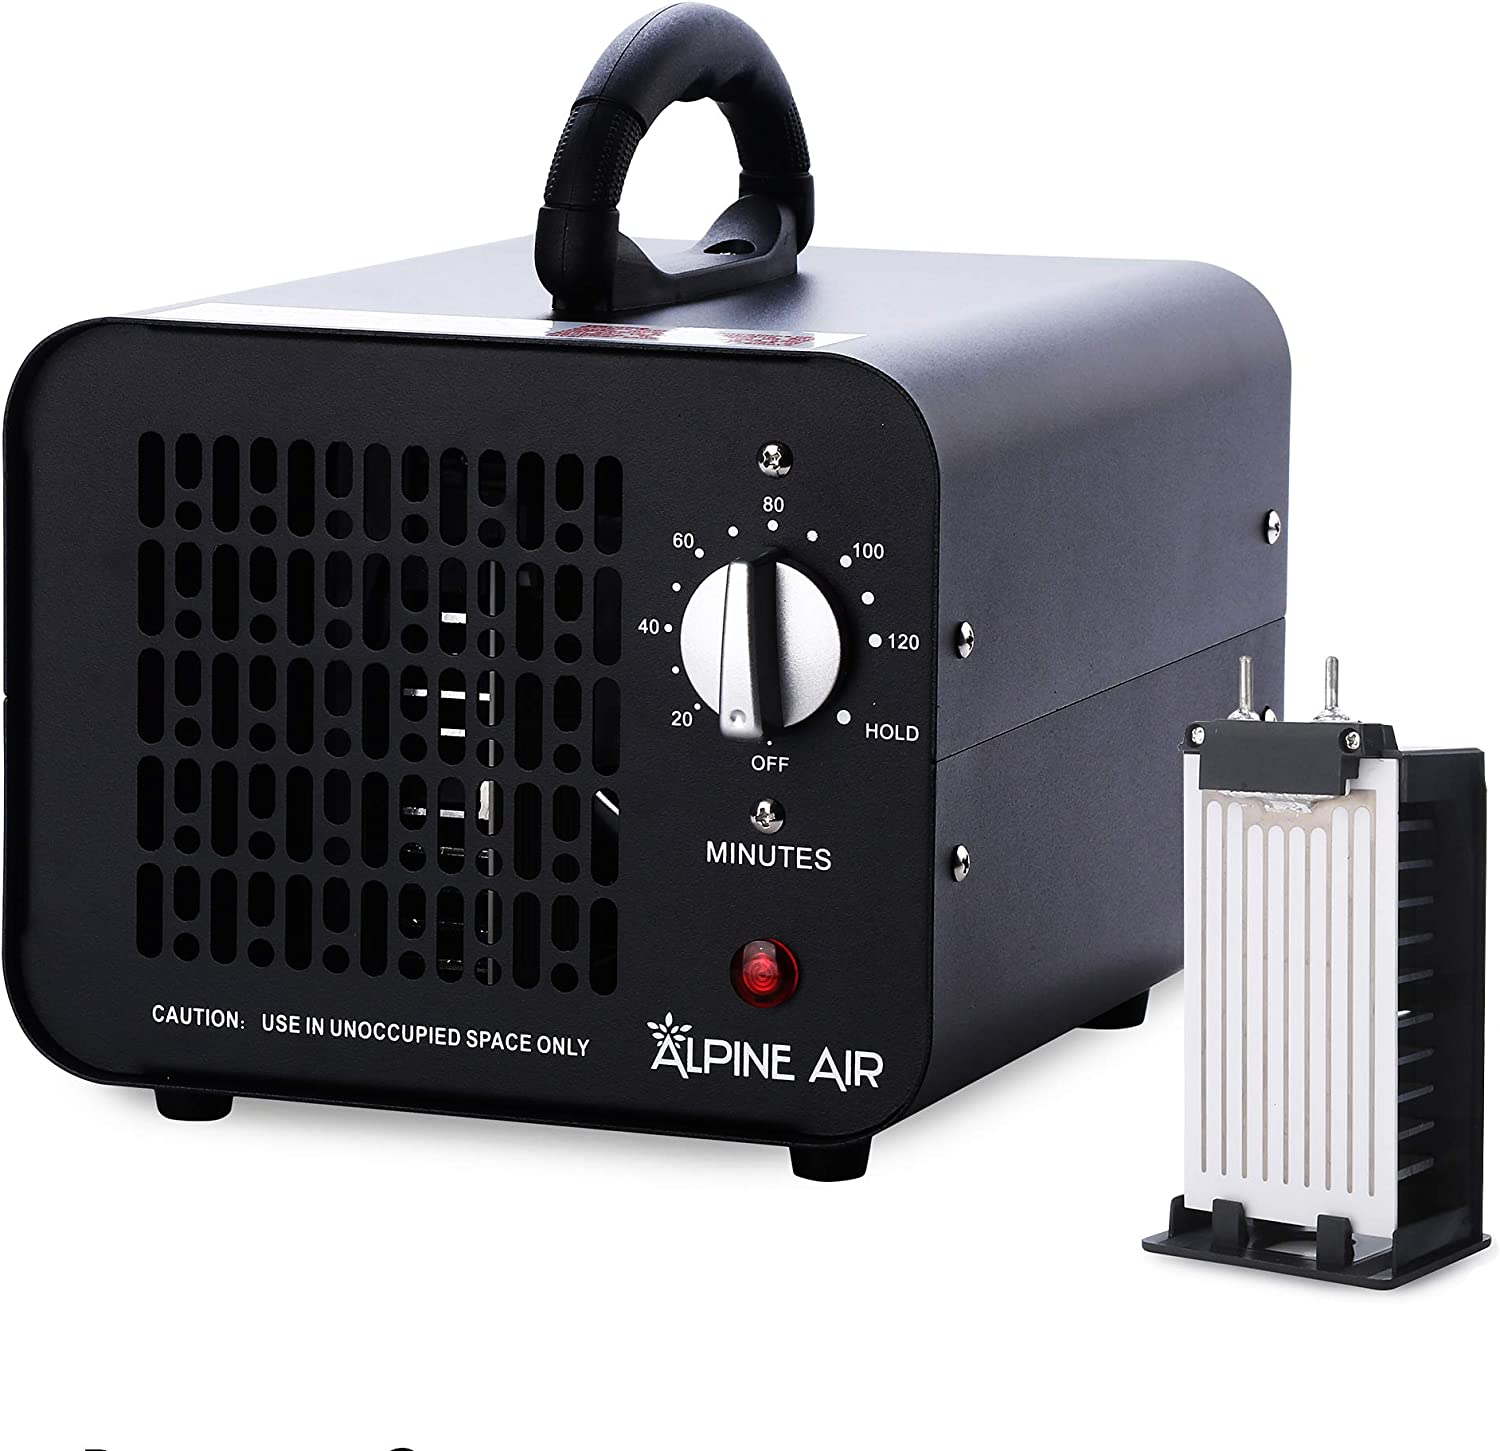 Alpine Air Commercial Ozone Generator – 6,000 mg/h | Professional O3 Air Purifier, Ozonator and Ionizer | Heavy Duty Air Cleaner, Deodorizer and Sterilizer | Best for Odor Stop Control